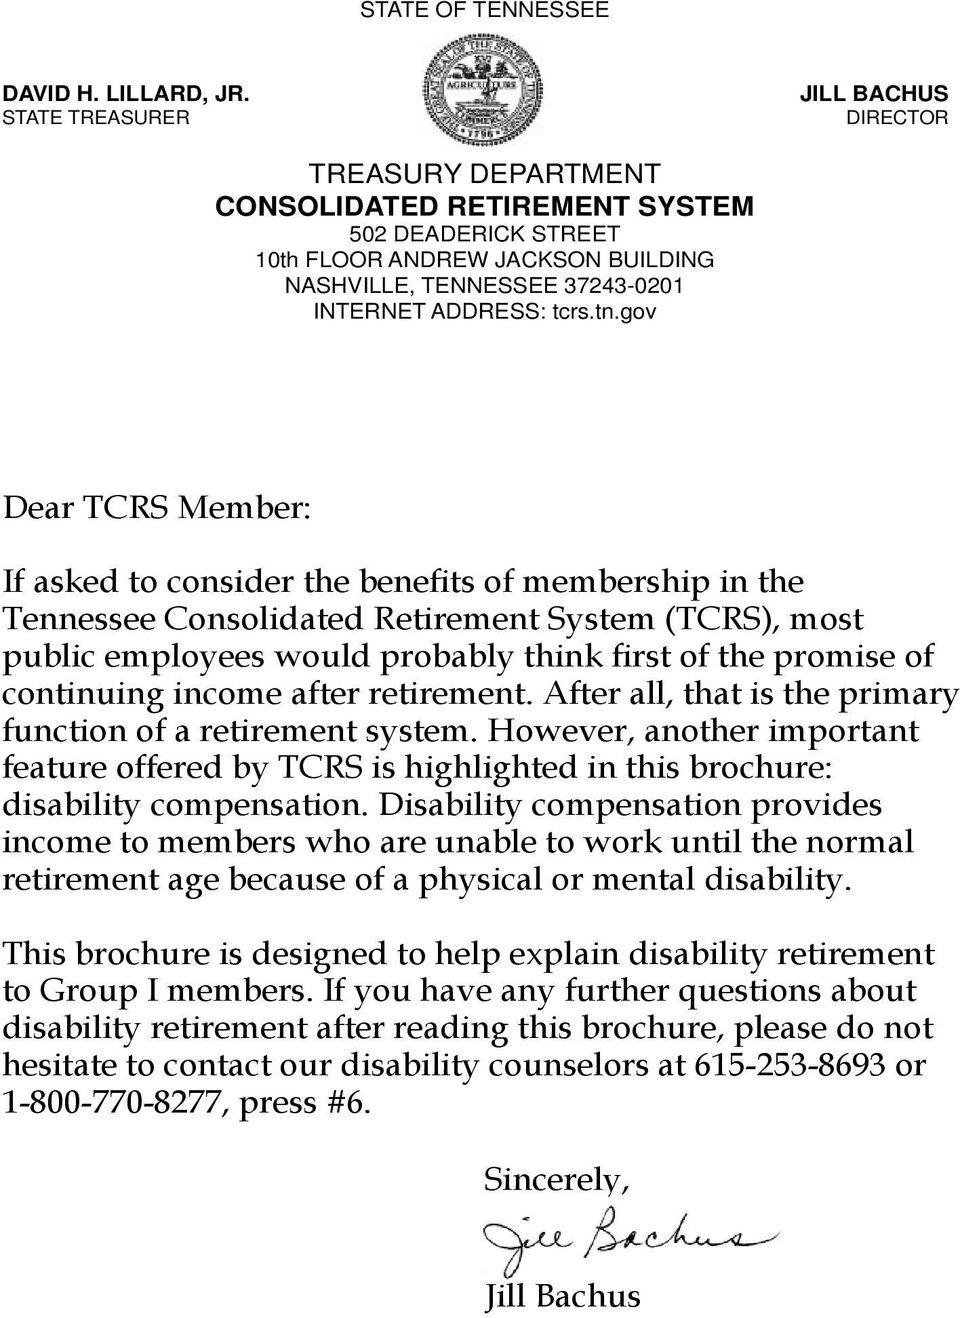 tn.gov Dear TCRS Member: If asked to consider the benefits of membership in the Tennessee Consolidated Retirement System (TCRS), most public employees would probably think first of the promise of